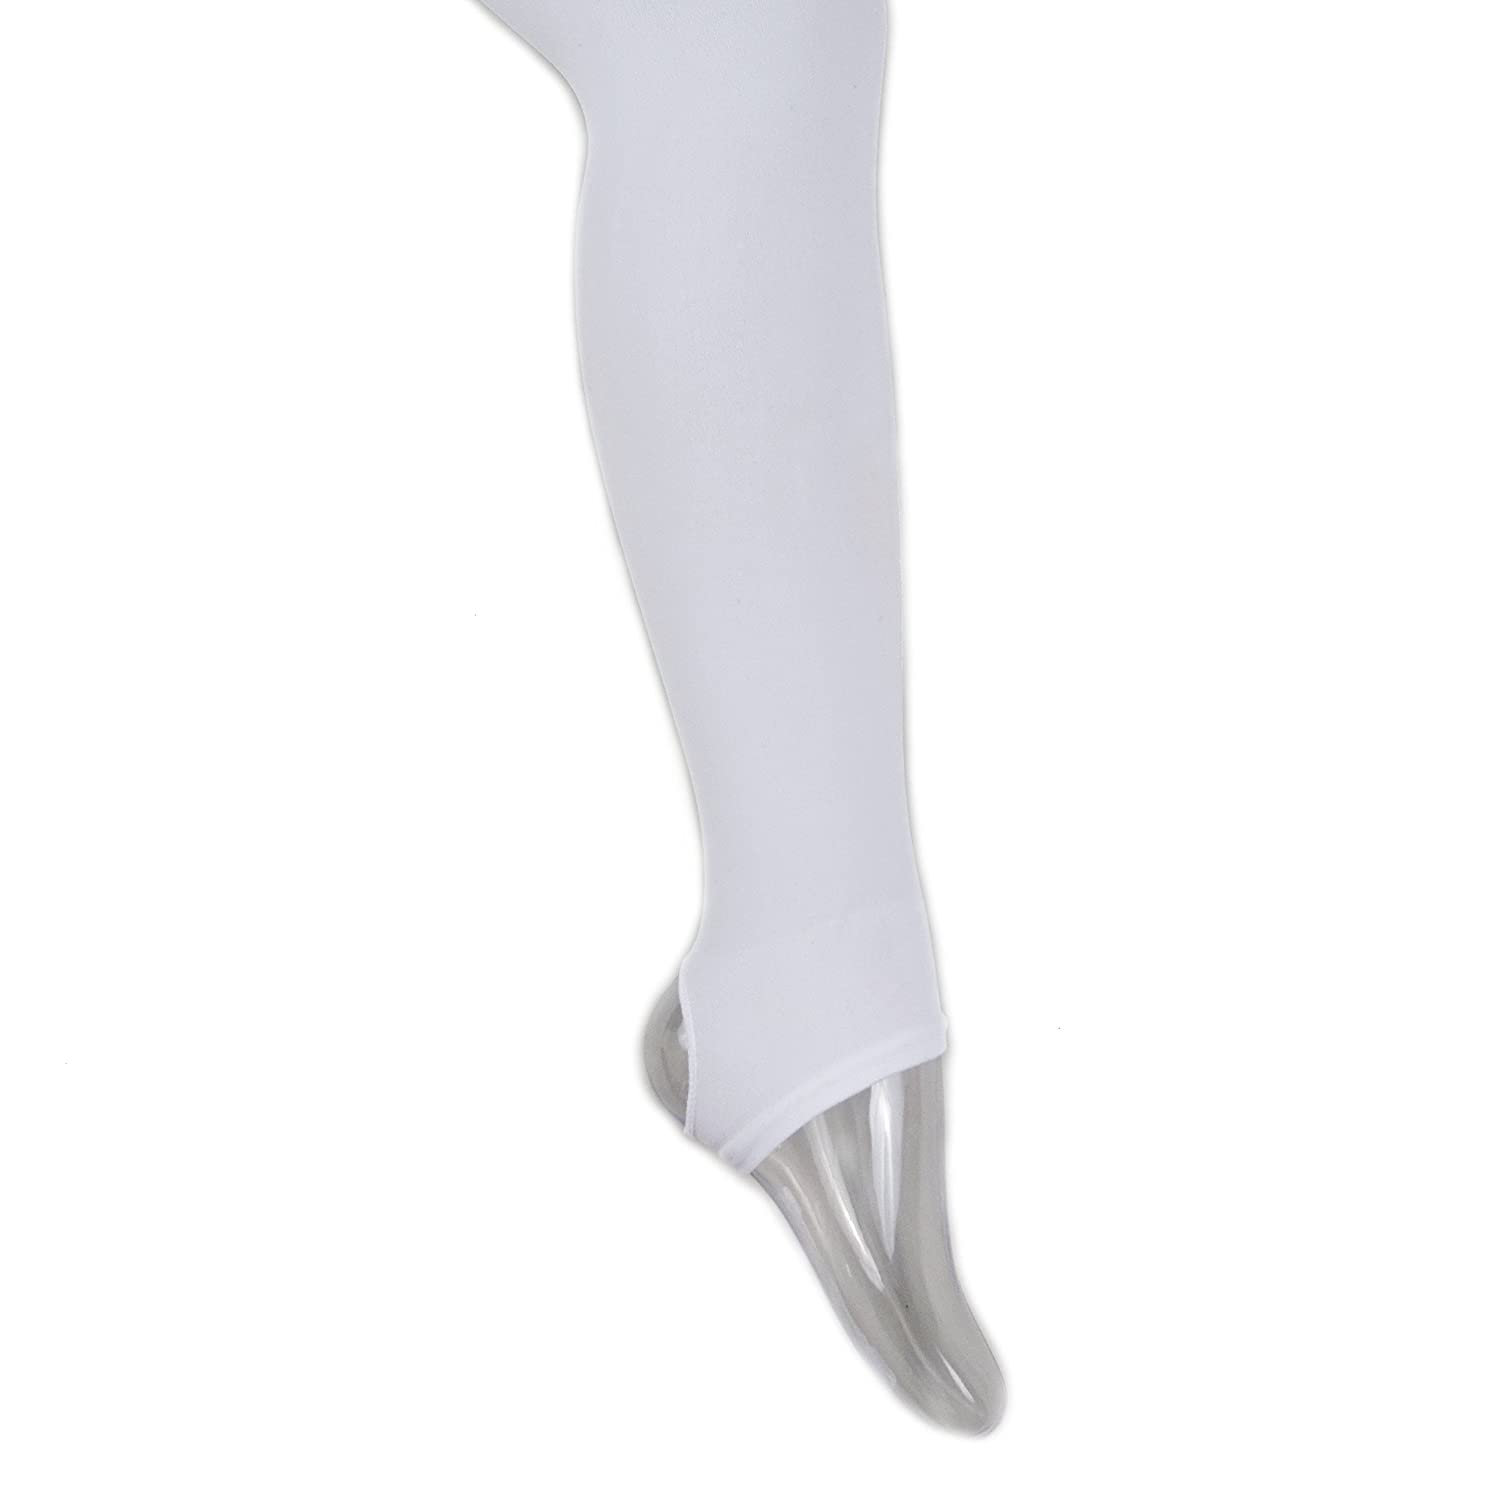 cf882b0231dae Amazon.com: wenchoice White Footless Tights Girls: Clothing